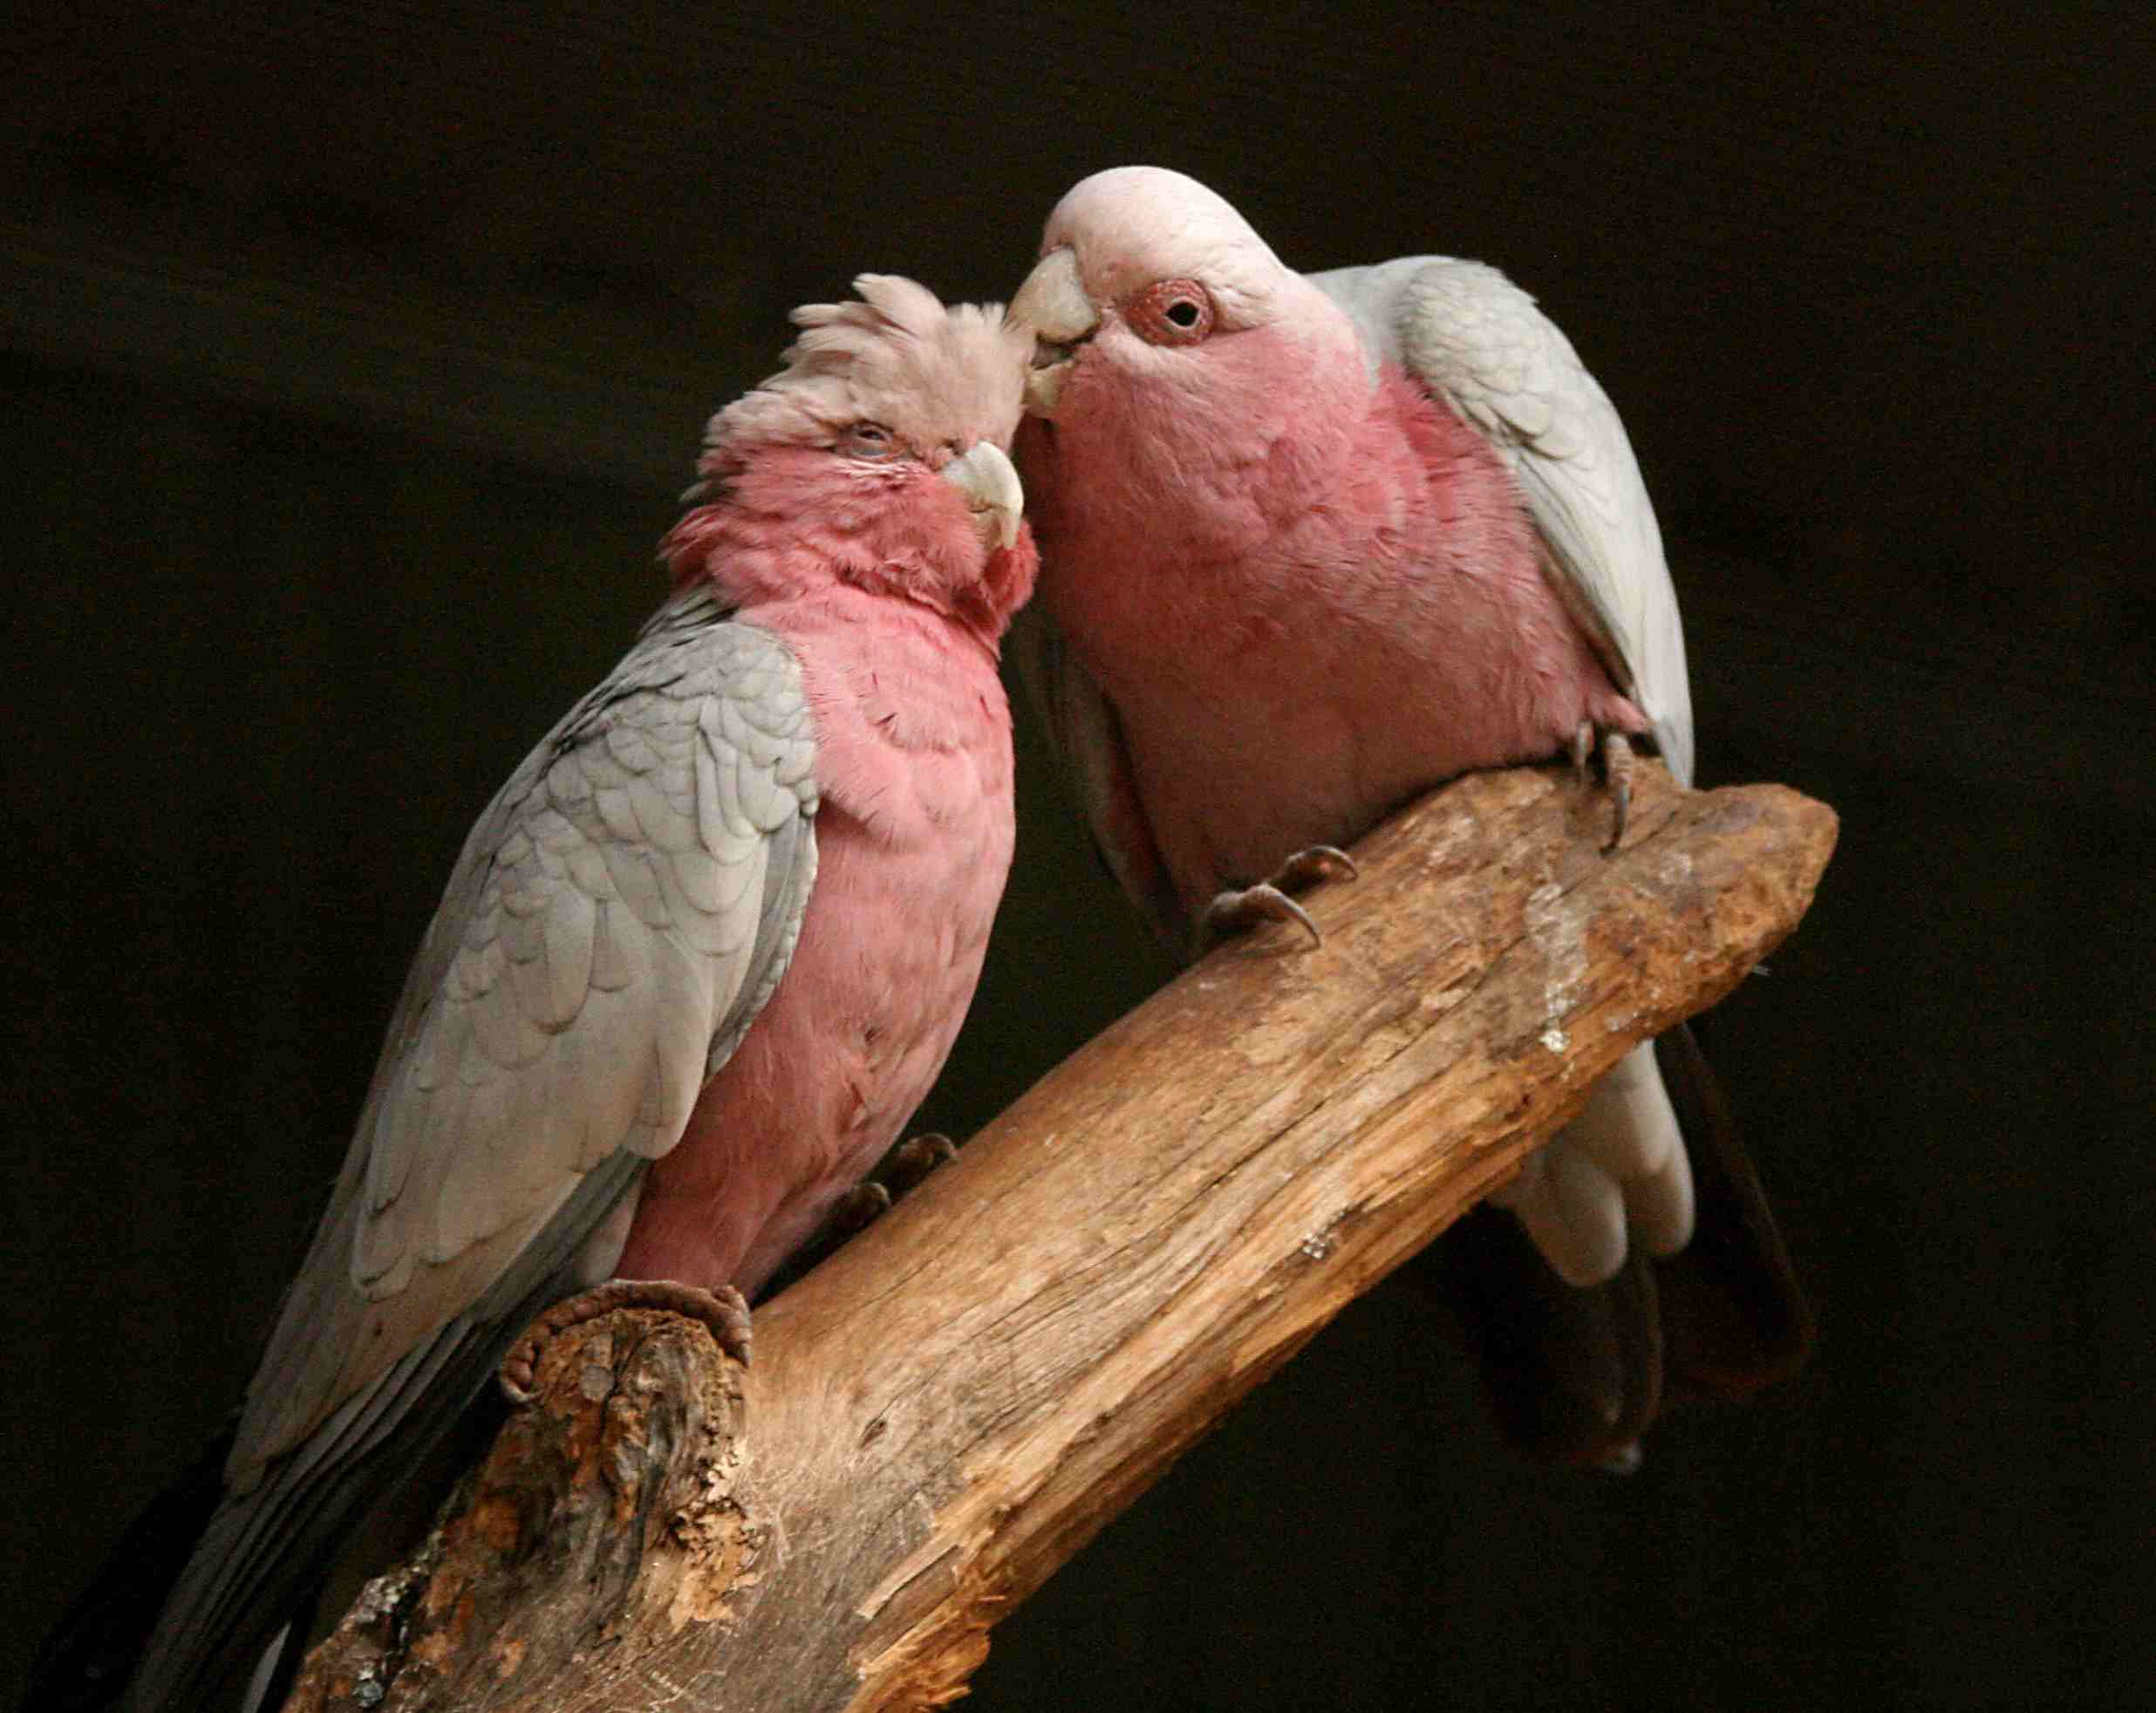 A pair of rose-breasted cockatoos on a branch